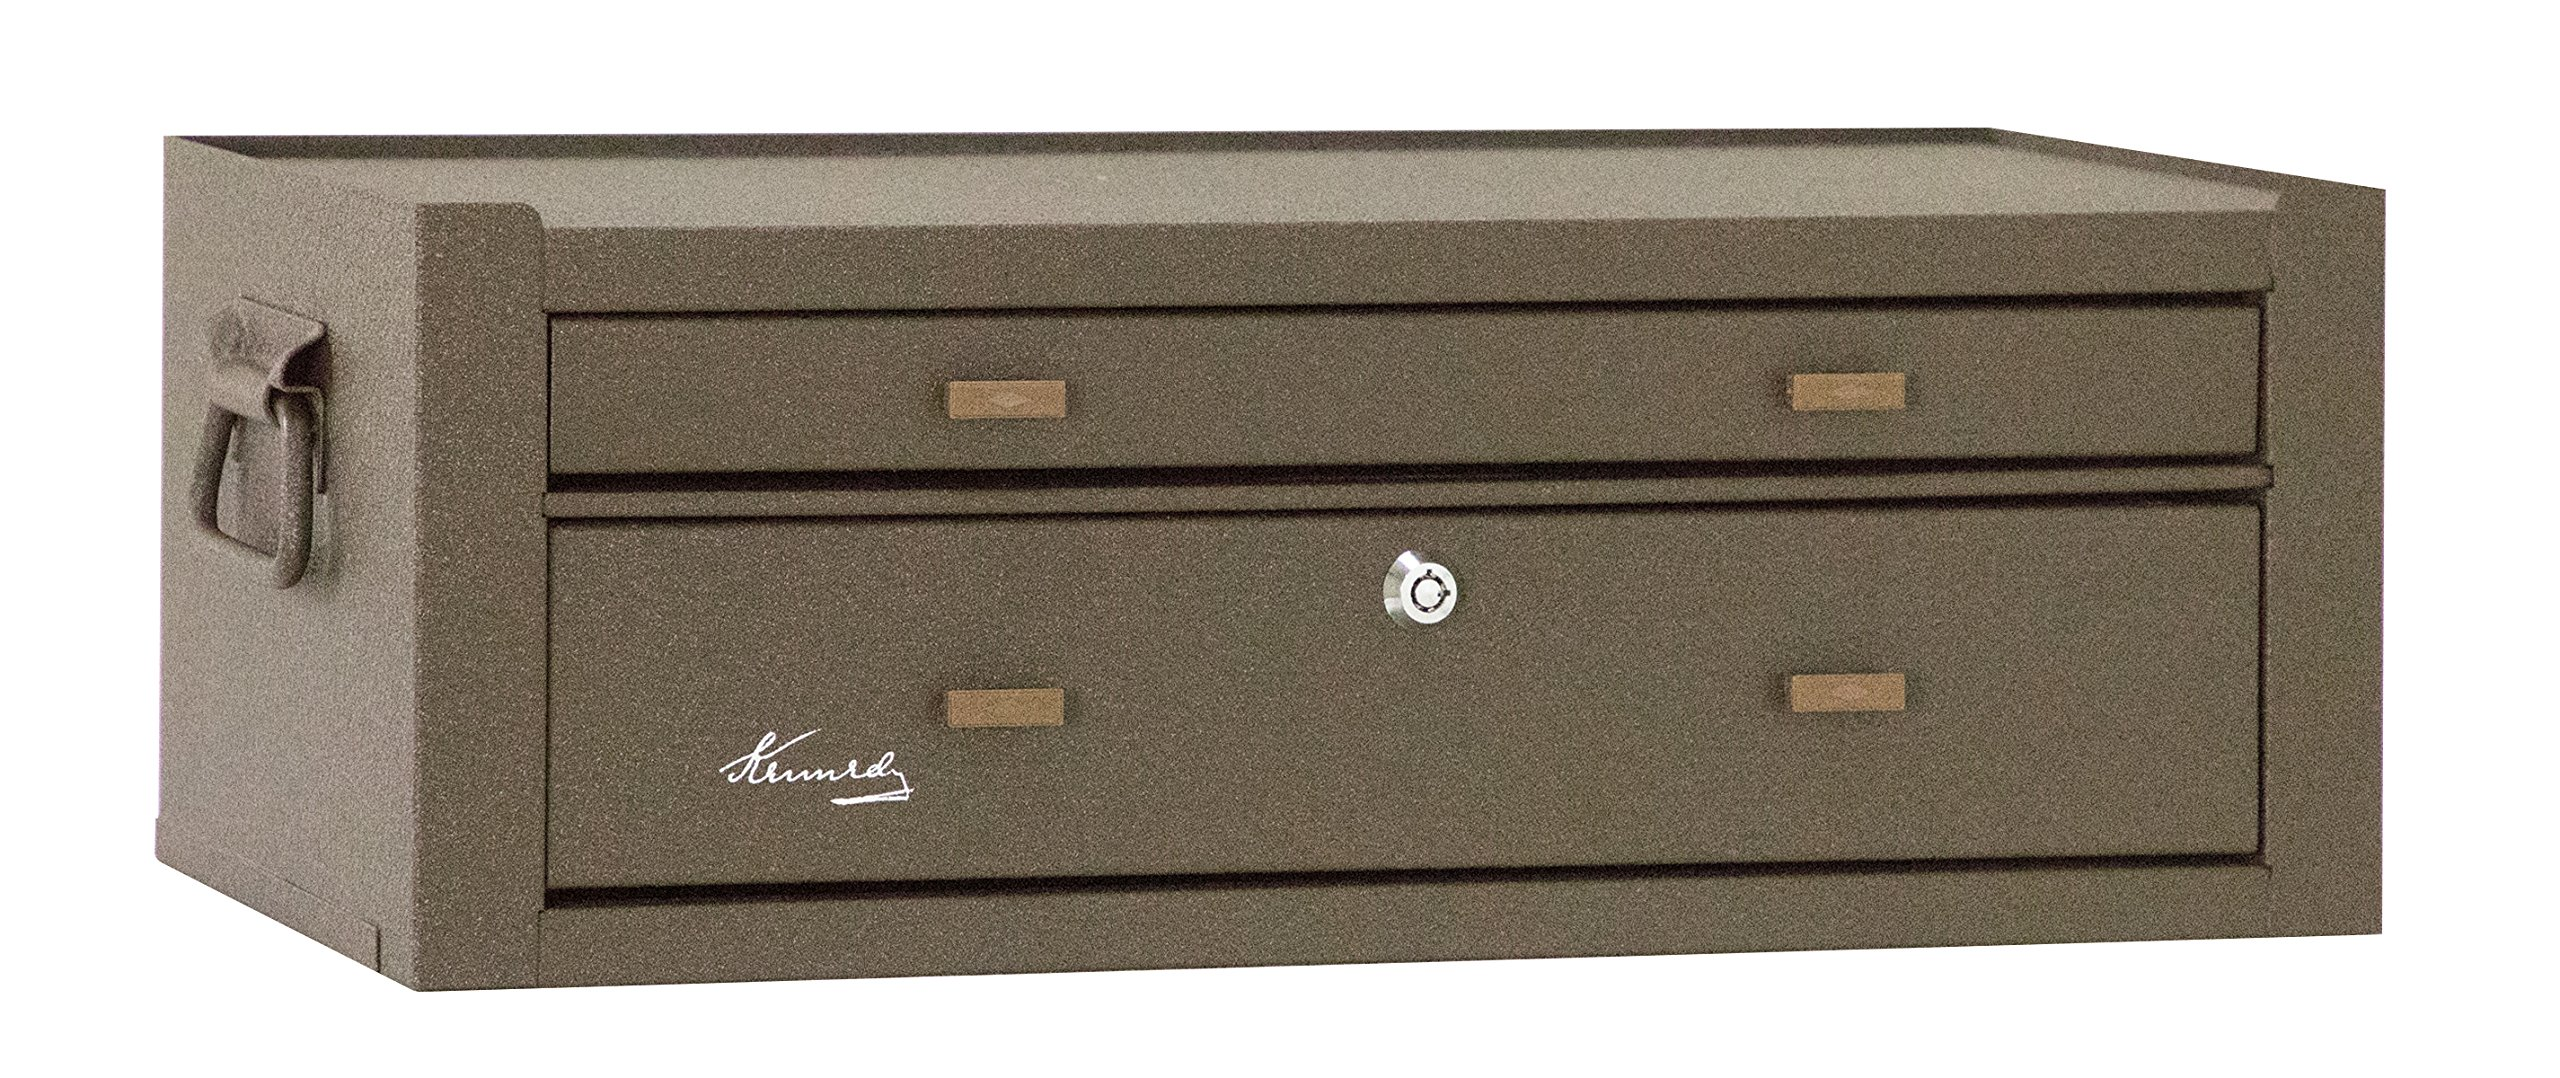 Kennedy Manufacturing MC22B 2-Drawer Machinist's Steel Tool Storage Chest Base with Friction Slides, 21'', Brown Wrinkle by Kennedy Manufacturing (Image #2)